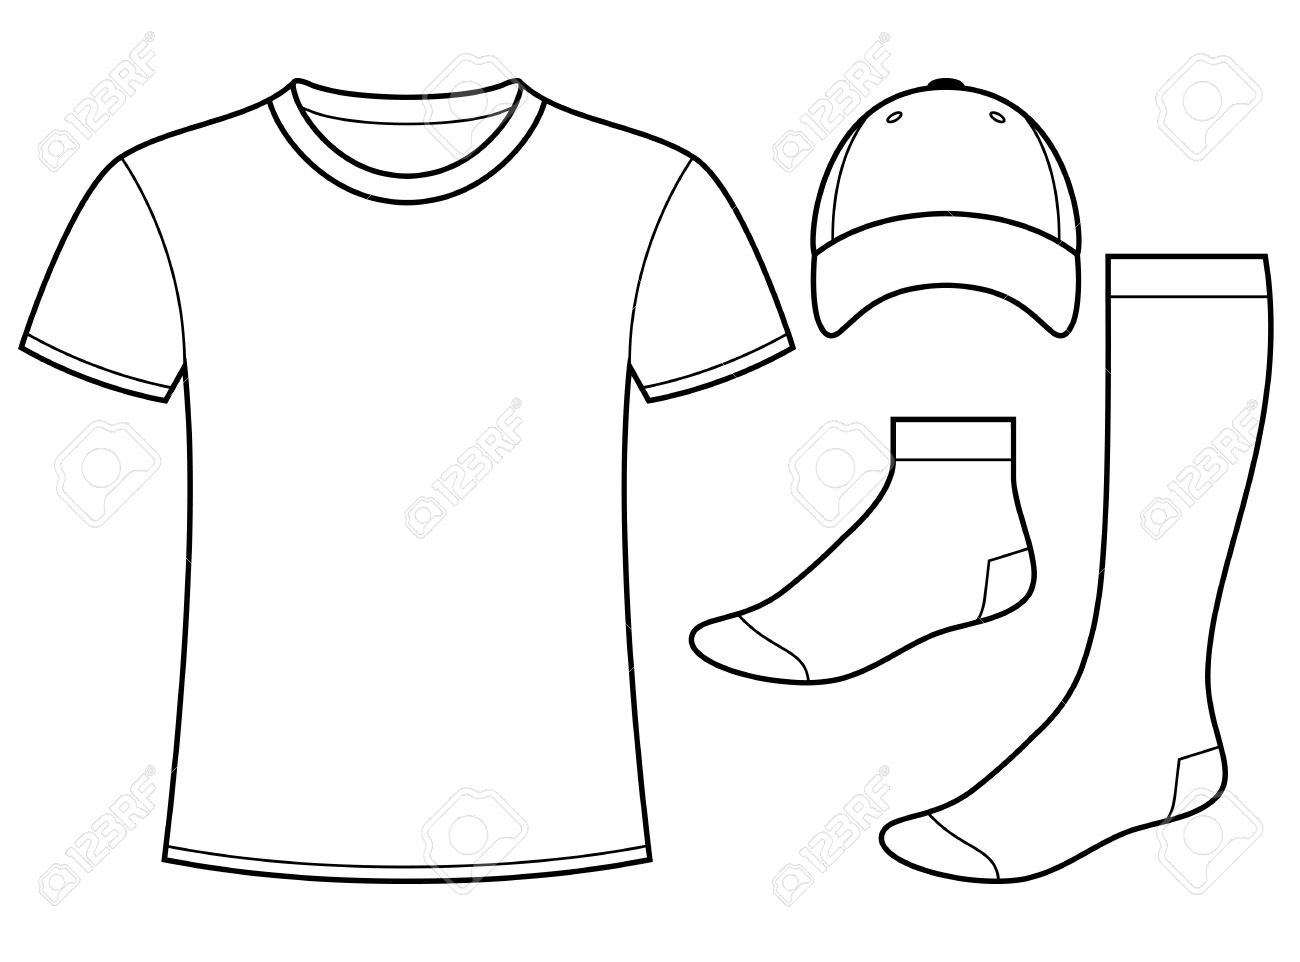 t shirt cap and socks template royalty free cliparts vectors and